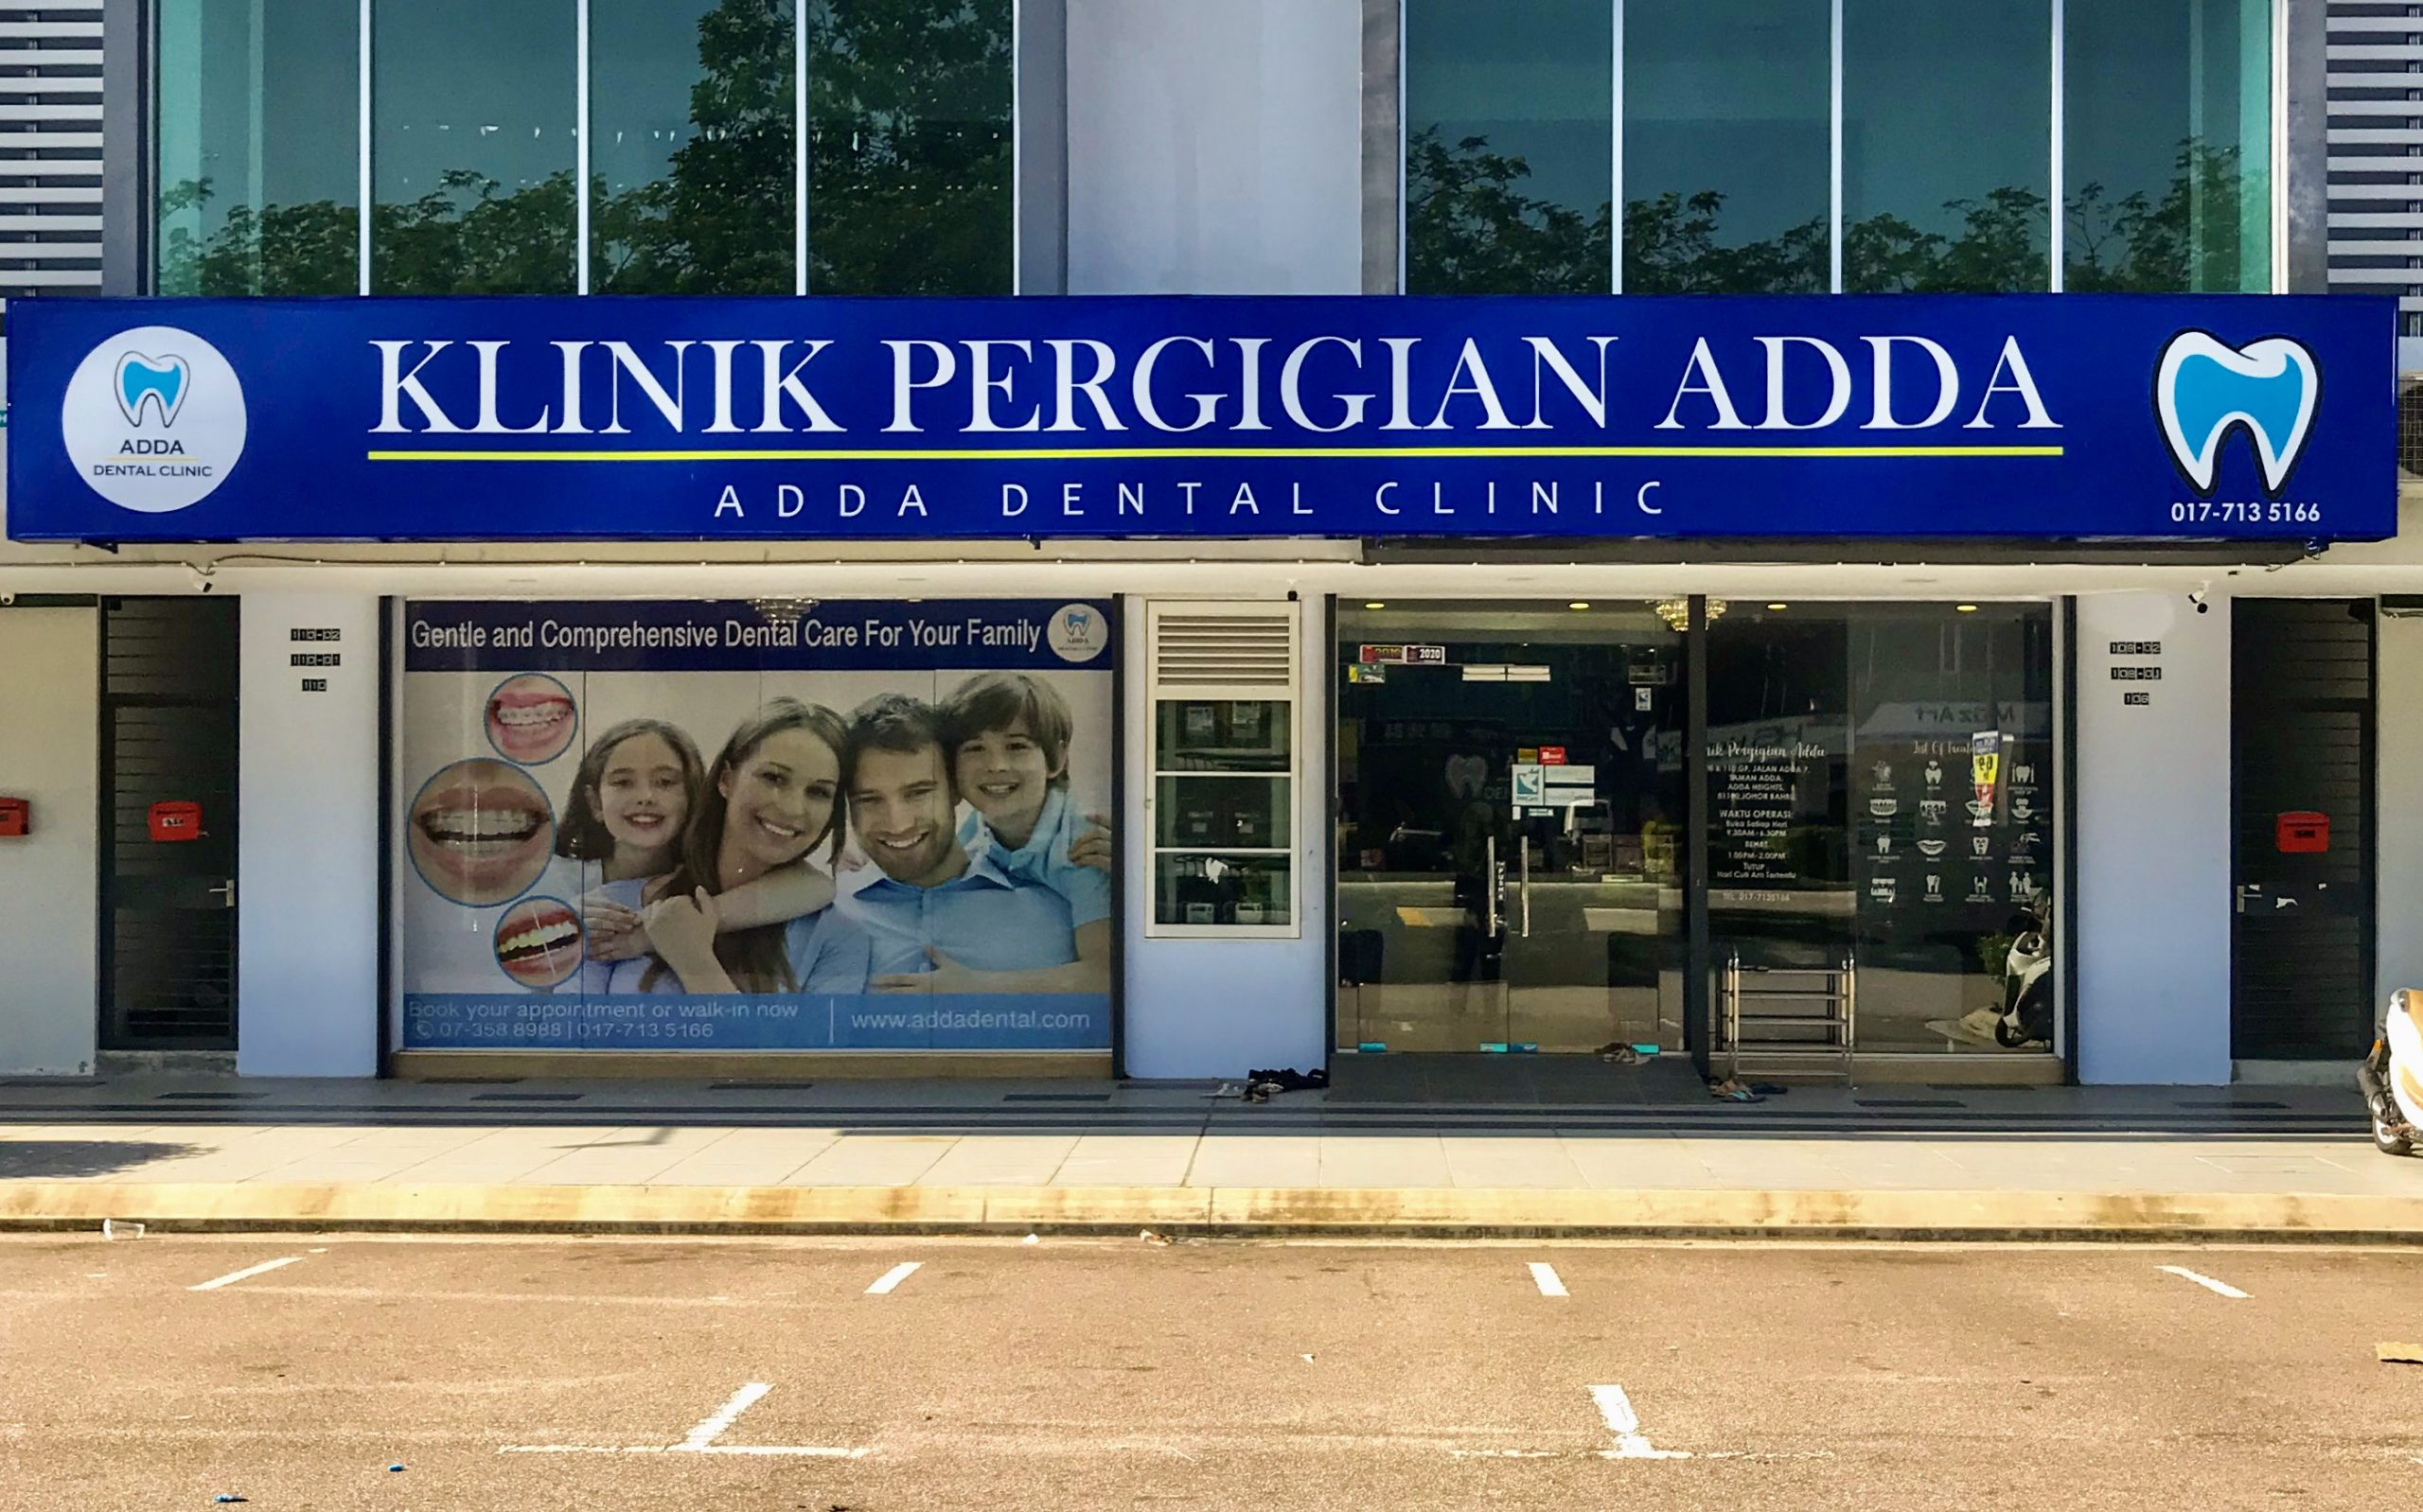 Adda Dental clinic exterior located in Adda Height Johor Bahru